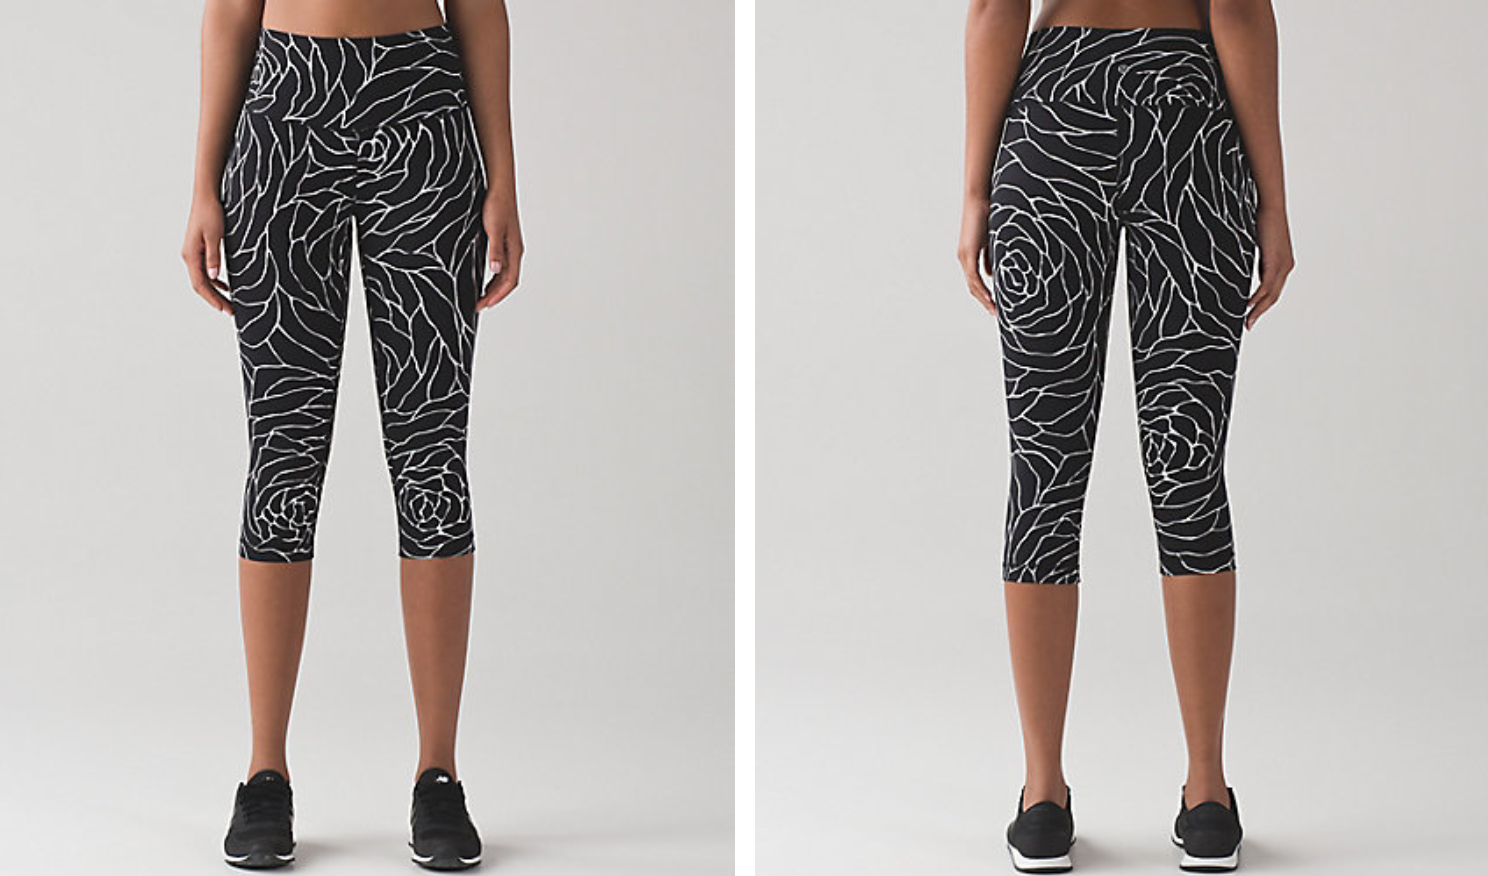 https://api.shopstyle.com/action/apiVisitRetailer?url=https%3A%2F%2Fshop.lululemon.com%2Fp%2Fwomen-crops%2FWunder-Under-Half-Tight-Hi-Rise-Full-On-Luxtreme%2F_%2Fprod8470008%3Frcnt%3D11%26N%3D1z13ziiZ7z5%26cnt%3D71%26color%3DLW6AGFS_029426&site=www.shopstyle.ca&pid=uid6784-25288972-7